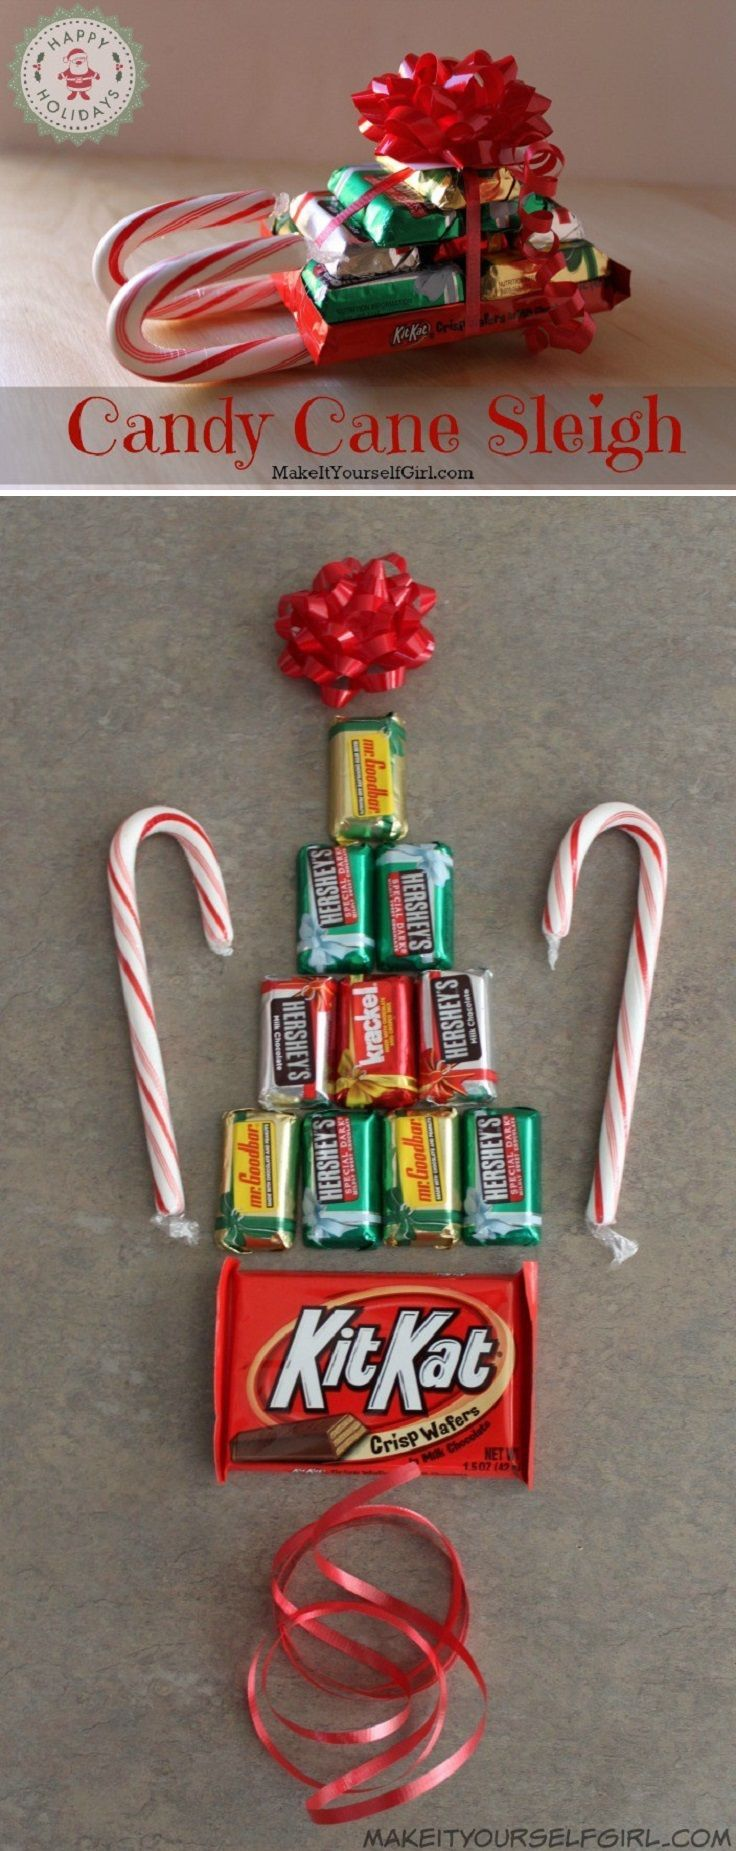 Simple DIY Candy Cane Sleigh - 12 Wondrous DIY Candy Cane Sleigh Ideas That Will Leave Your Kids Open-Mouthed